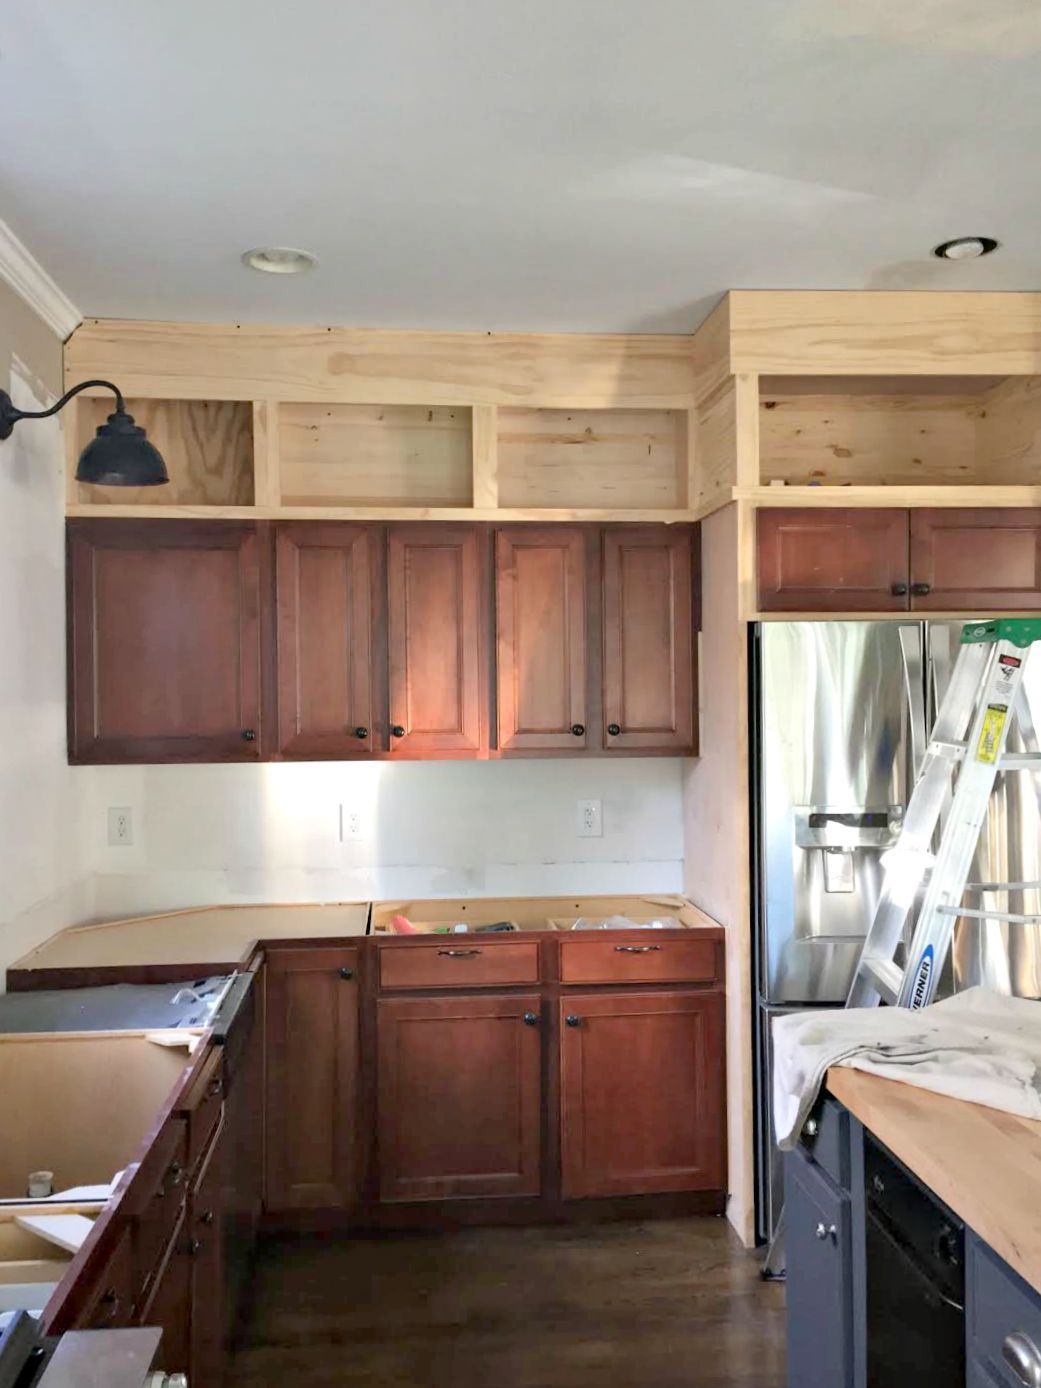 Of Kitchen Interiors Building Cabinets Up To The Ceiling Building Kitchen Cabinets